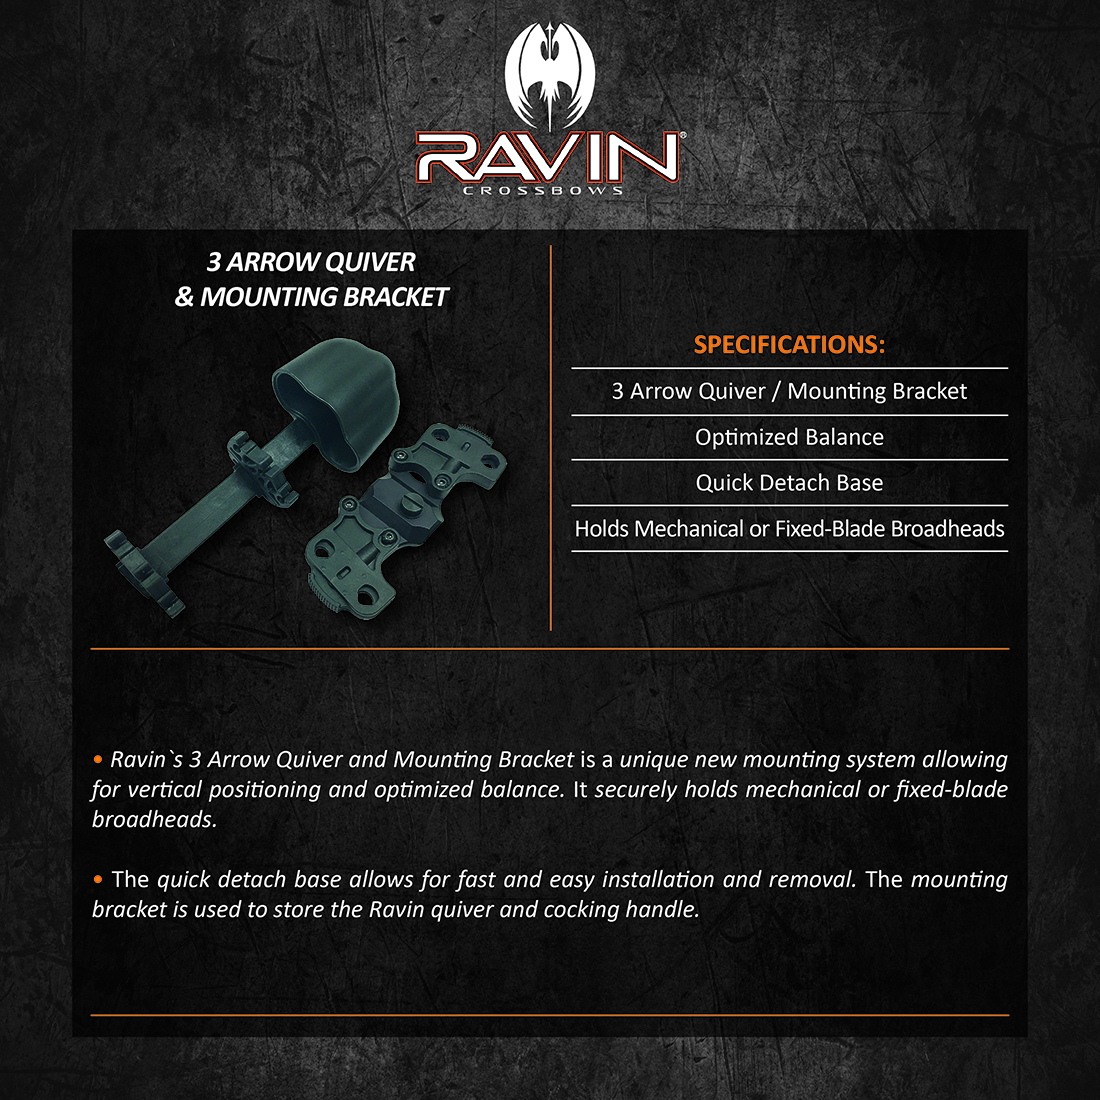 Ravin_Quiver_and_Mounting_Bracket_Product_Description